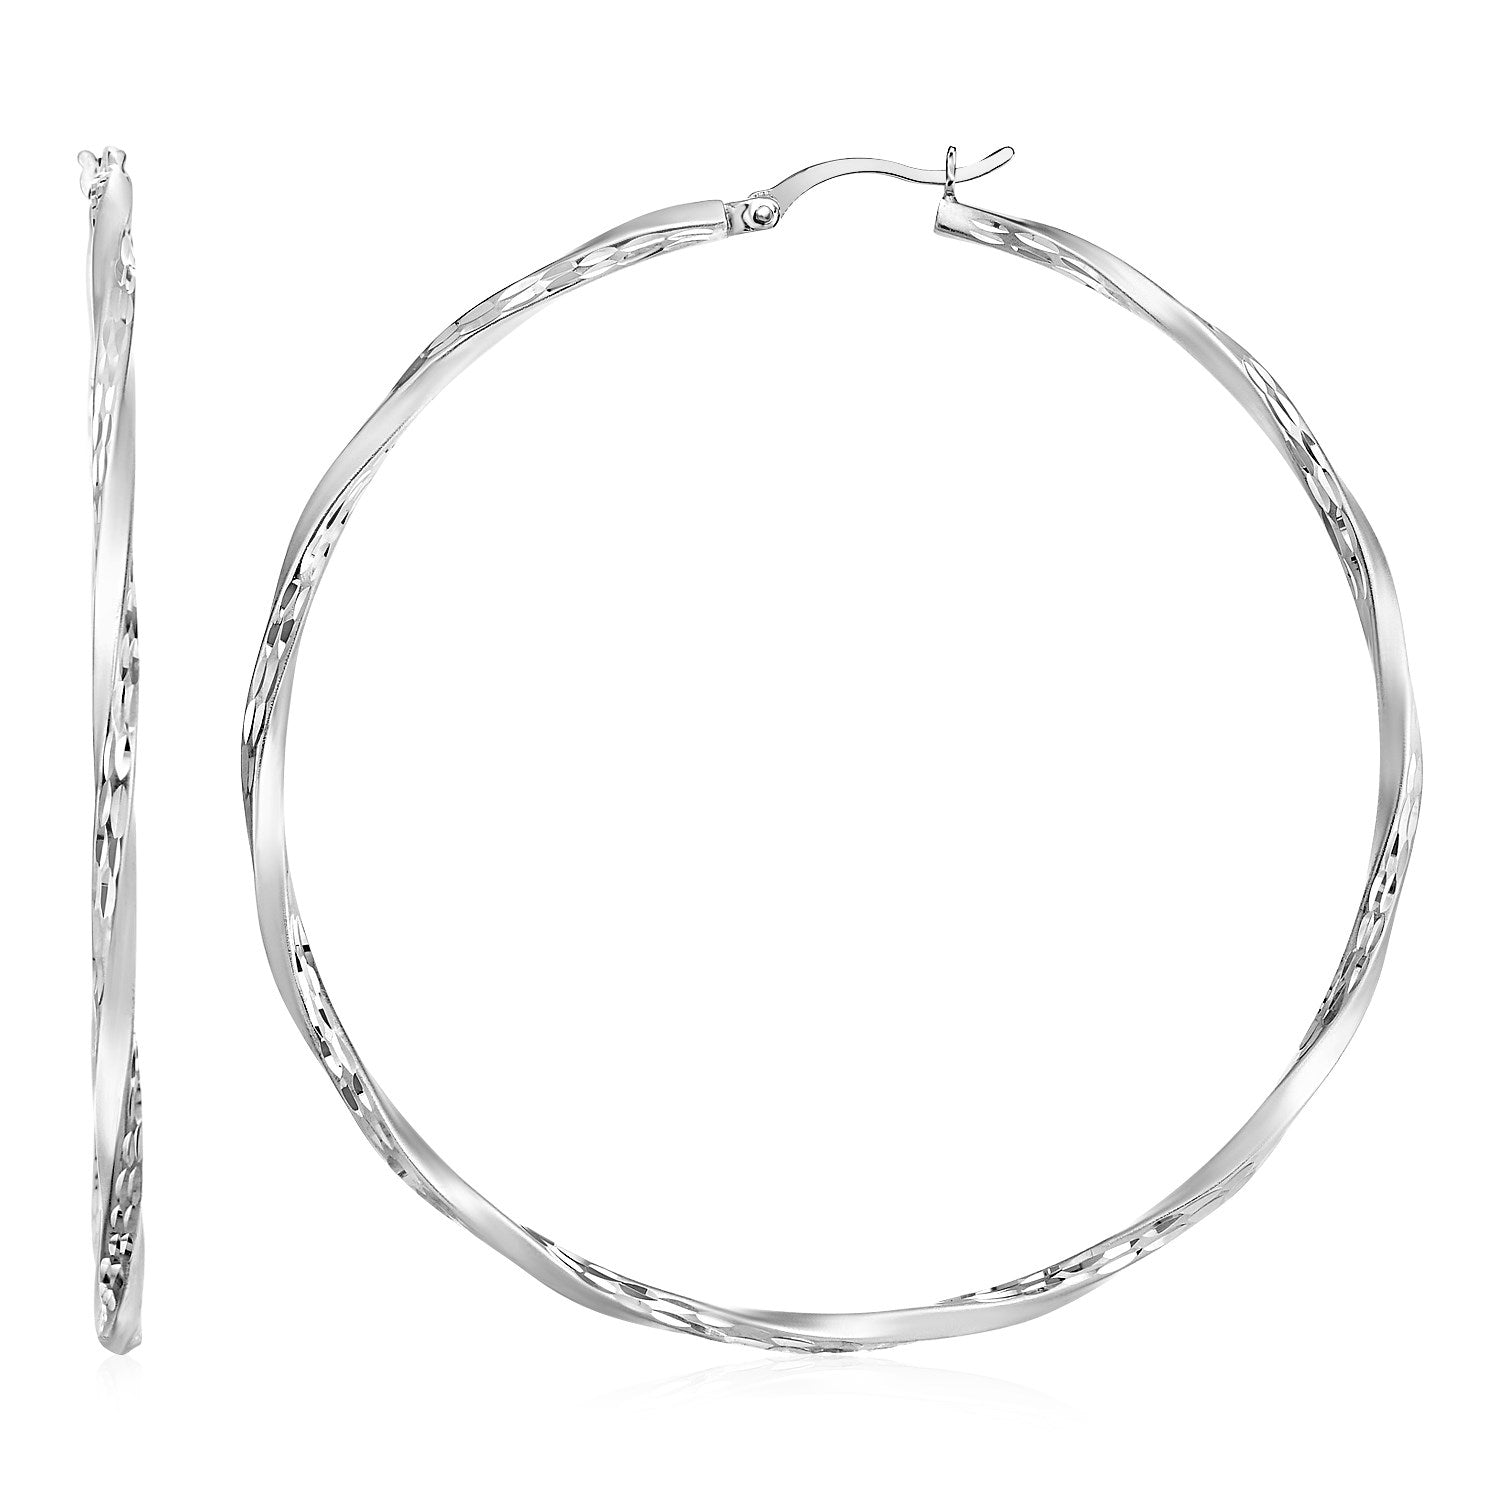 Matte and Textured Twisted Hoop Earrings in Sterling Silver